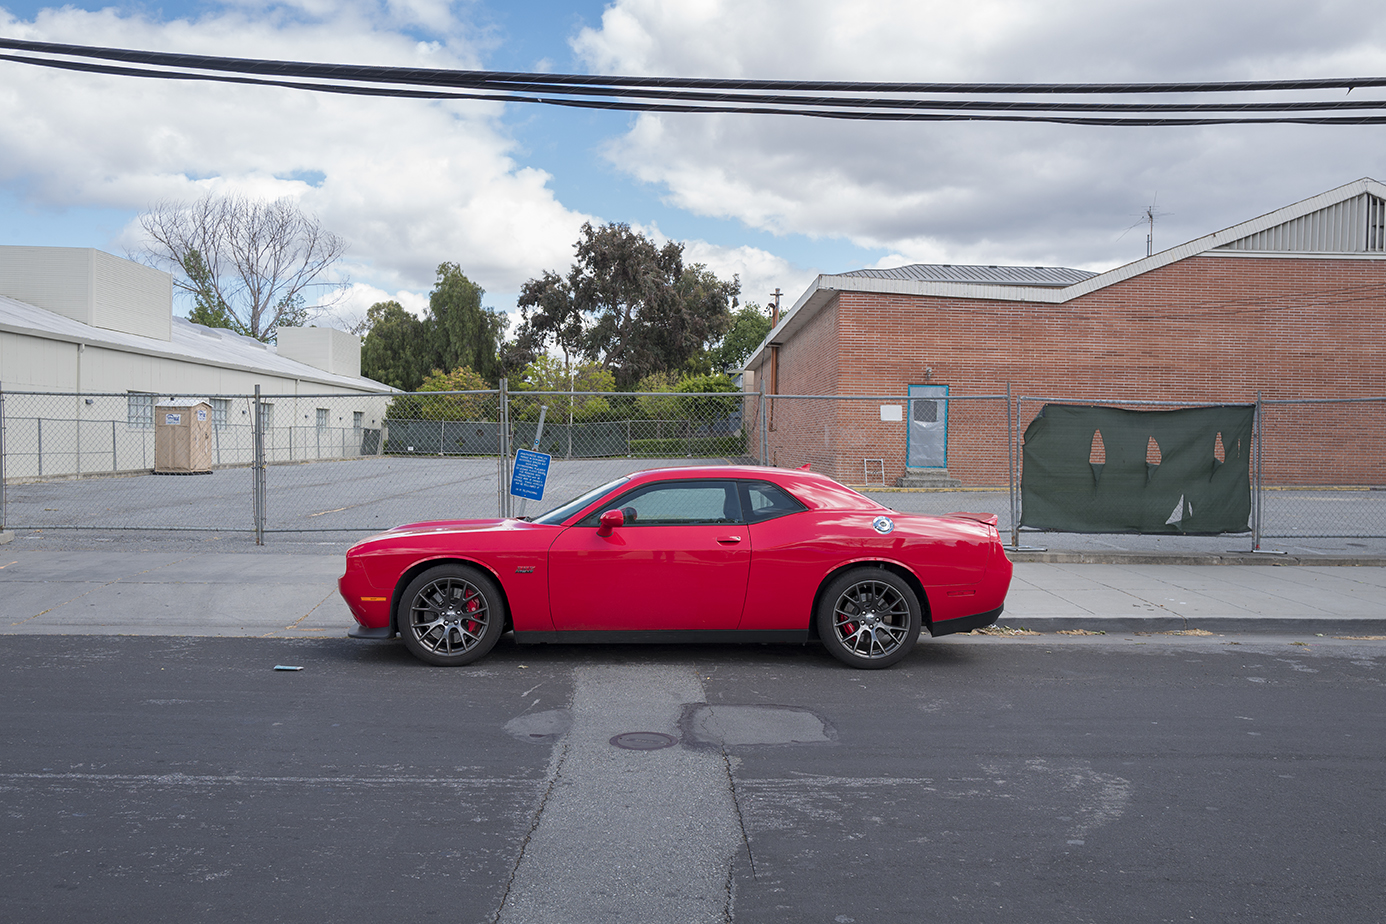 Palo Alto Red Mustang & Foot Locker_web.jpg